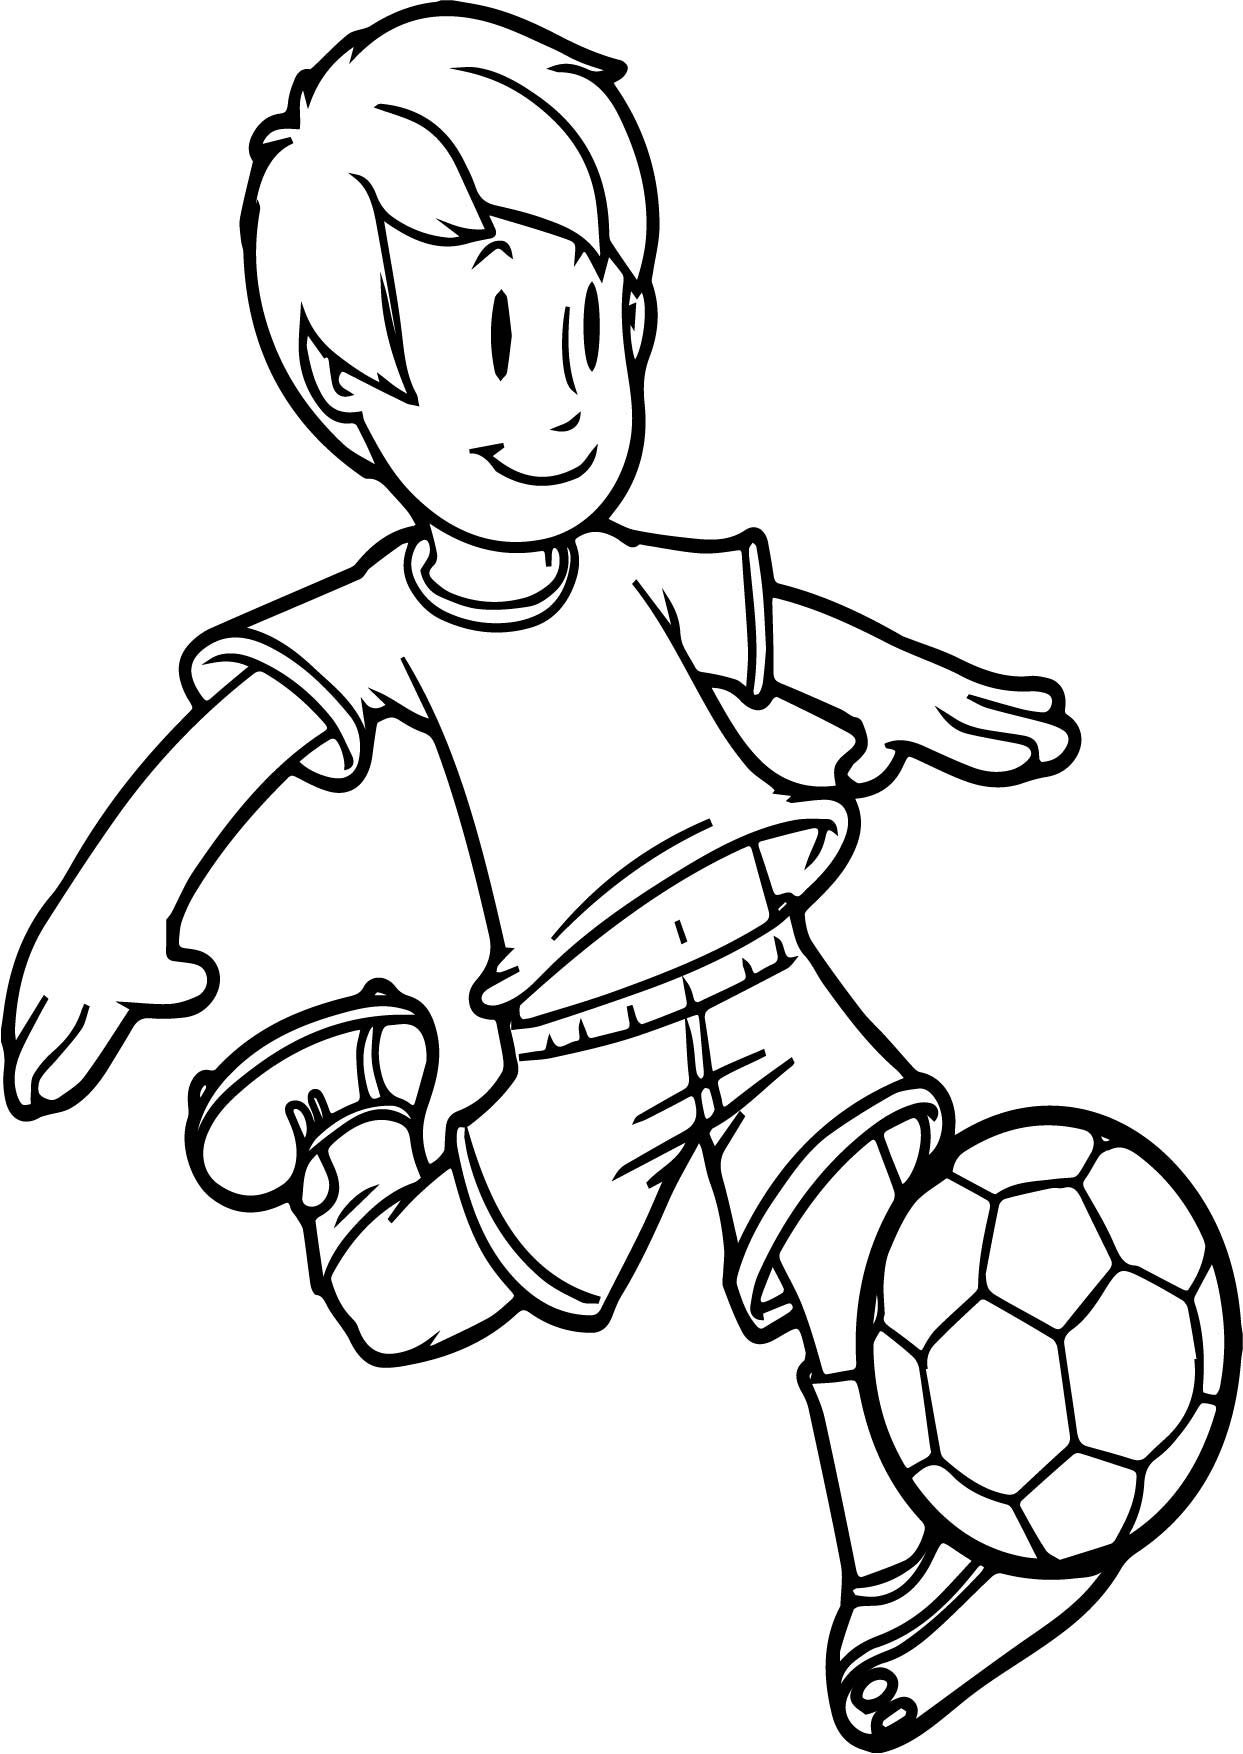 1243x1754 Boys Coloring Pages Fresh Anime Boy Coloring Pages Logo